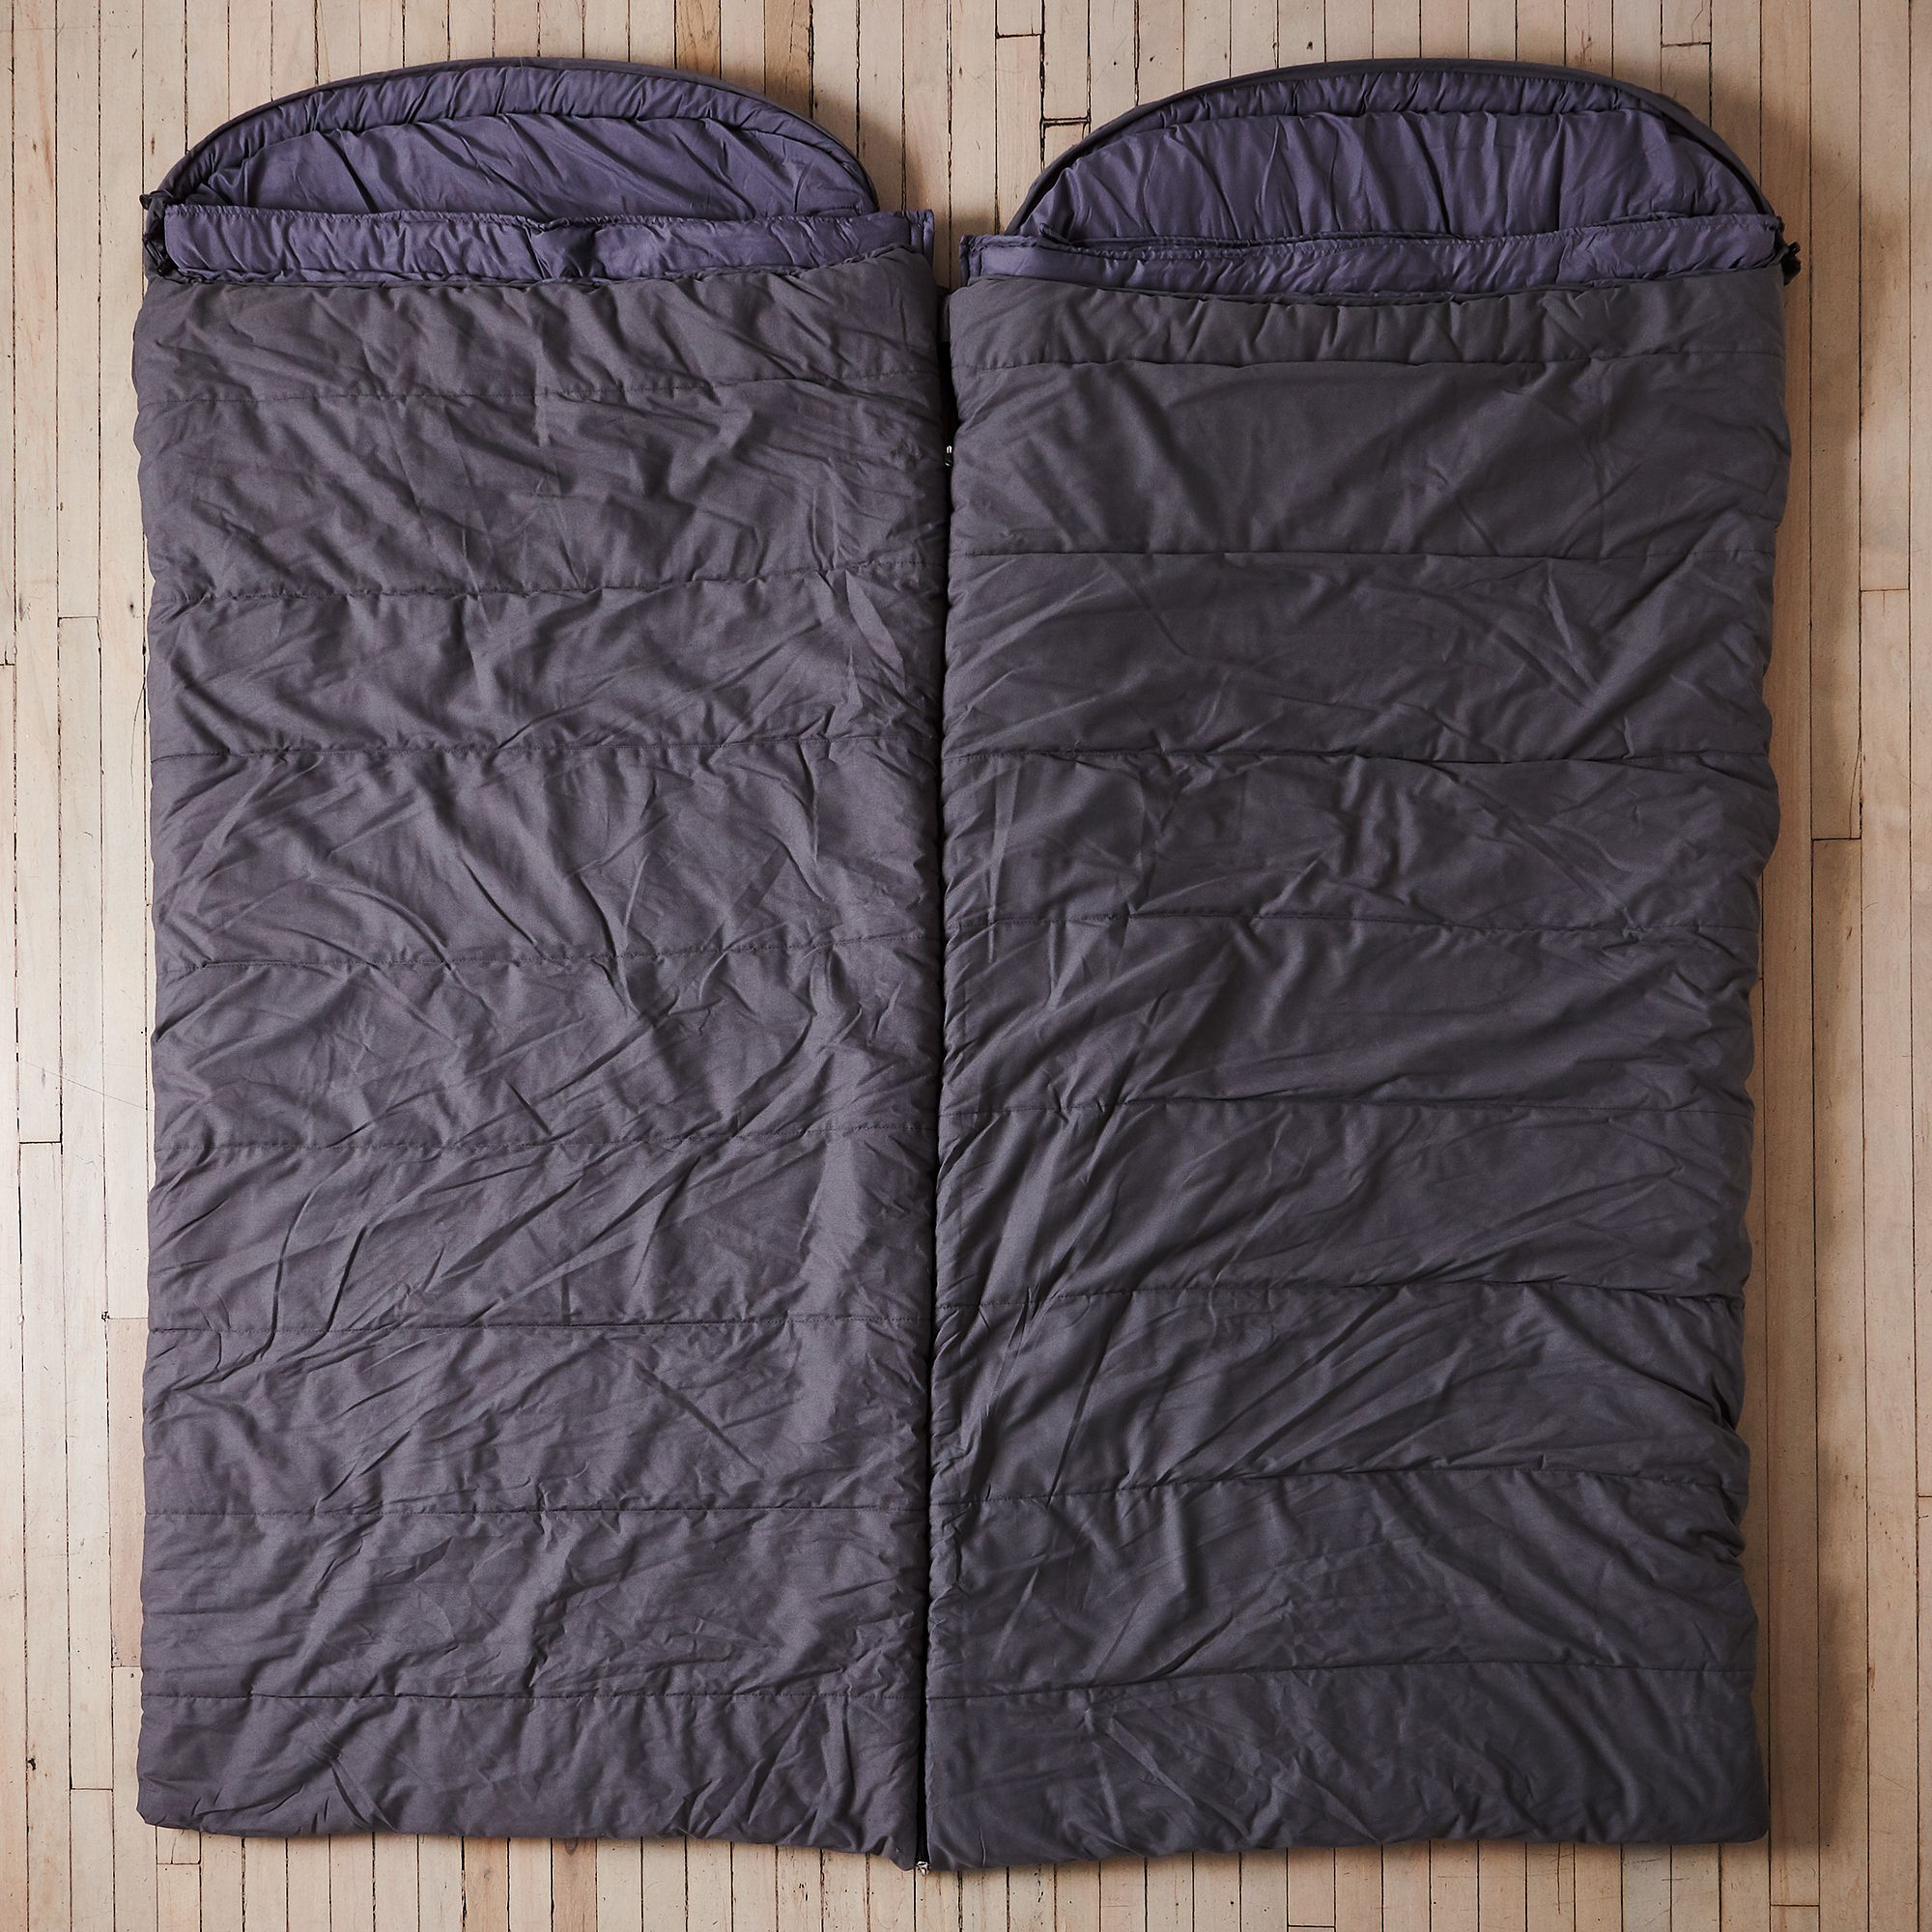 21bcad9e b666 482b a859 cfaa2f908aa0  2017 0803 barebones living sleeping bag the couple silo rocky luten 039